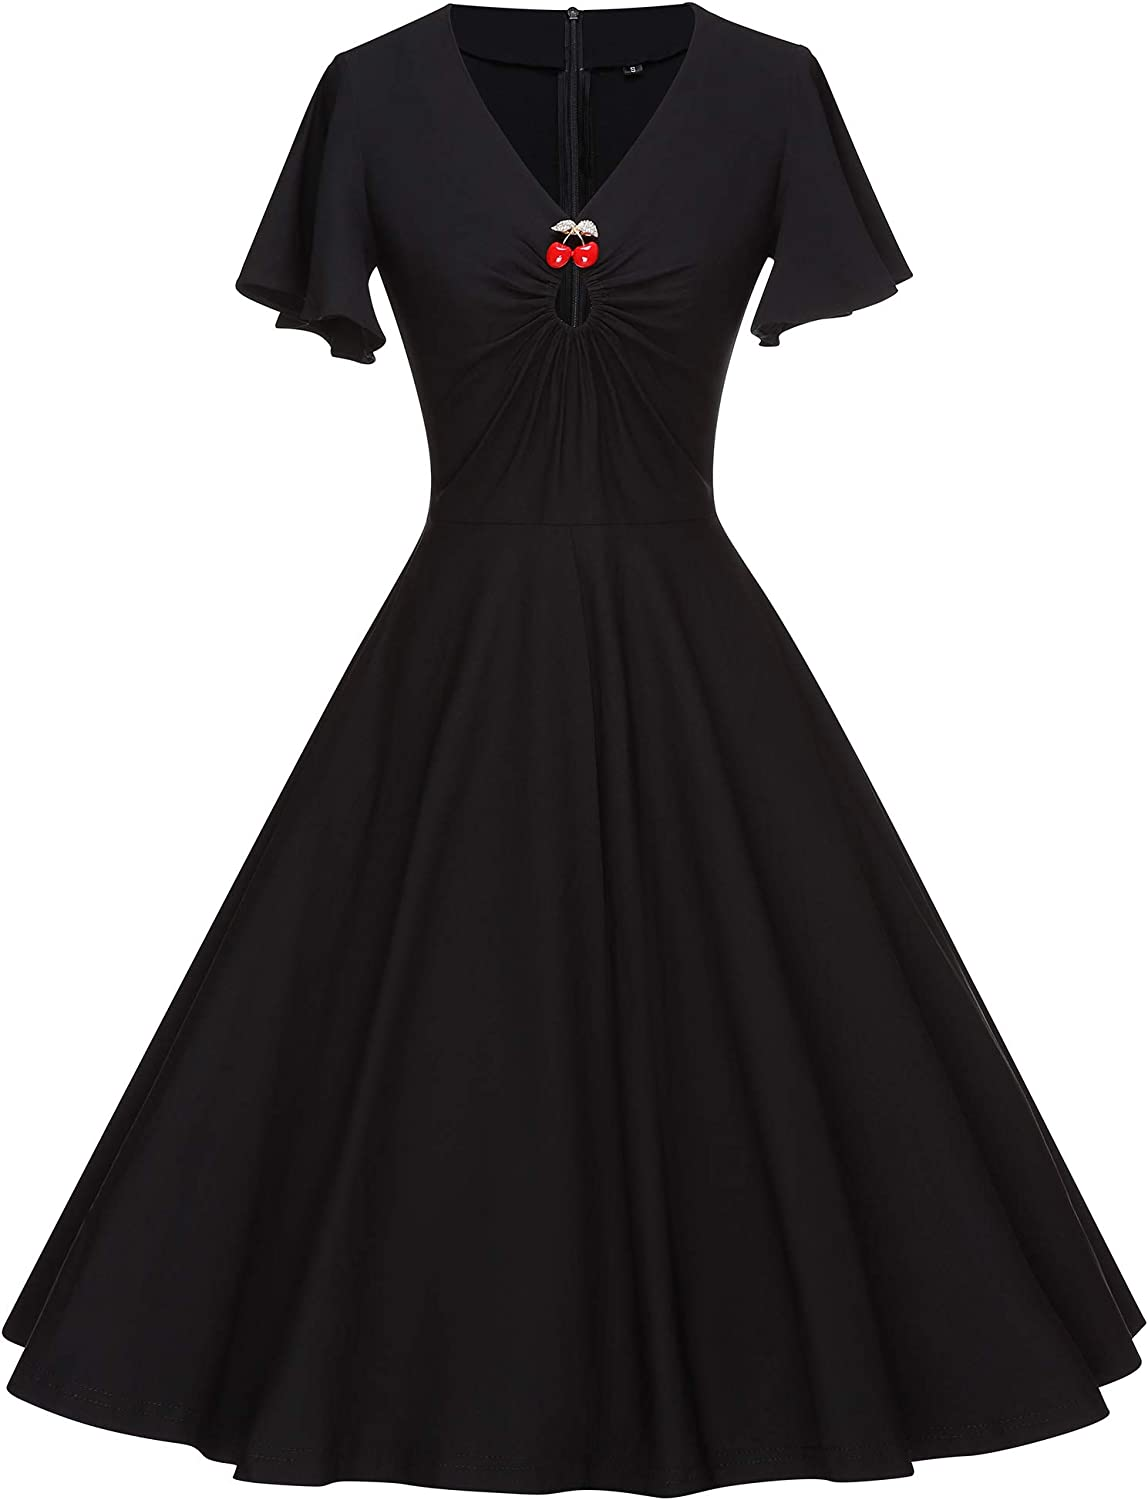 GownTown Womens 1950s Style Stretch Party Swing Dress